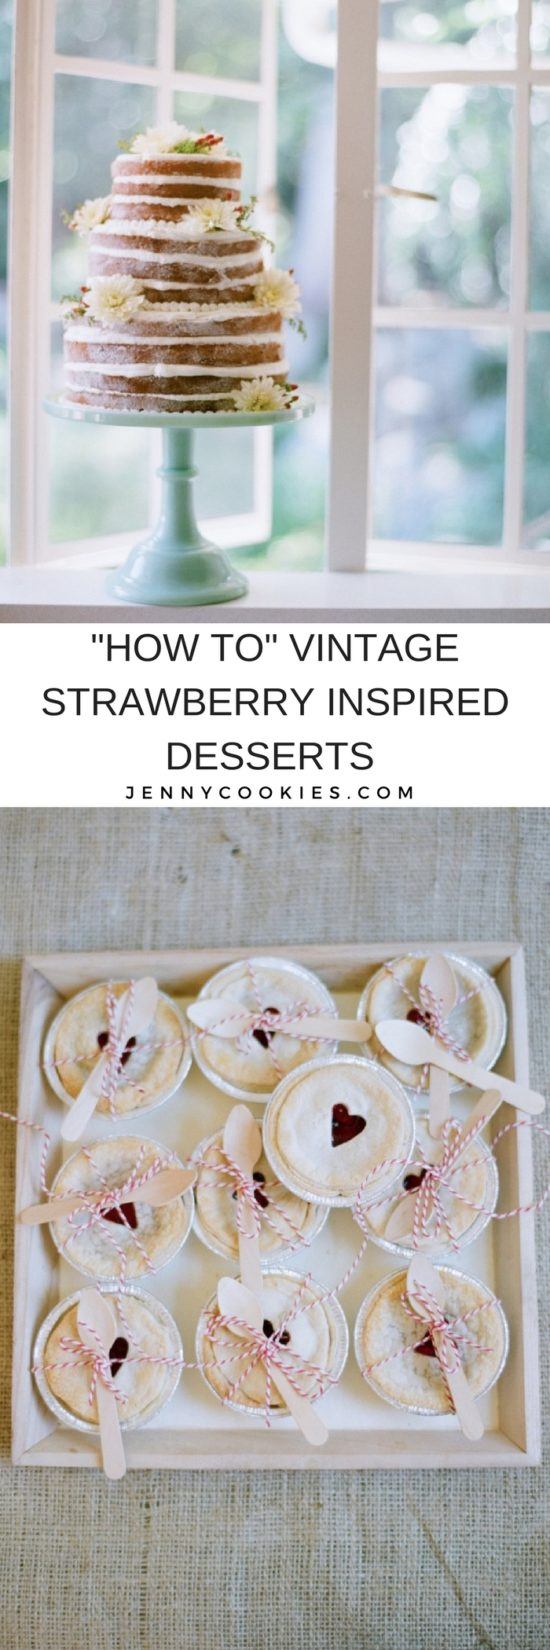 Vintage Strawberry Dessert Table | strawberry inspired dessert table | strawberry dessert recipes | dessert table ideas | homemade strawberry desserts || JennyCookies.com #strawberrydesserts #desserttable #easydesserts